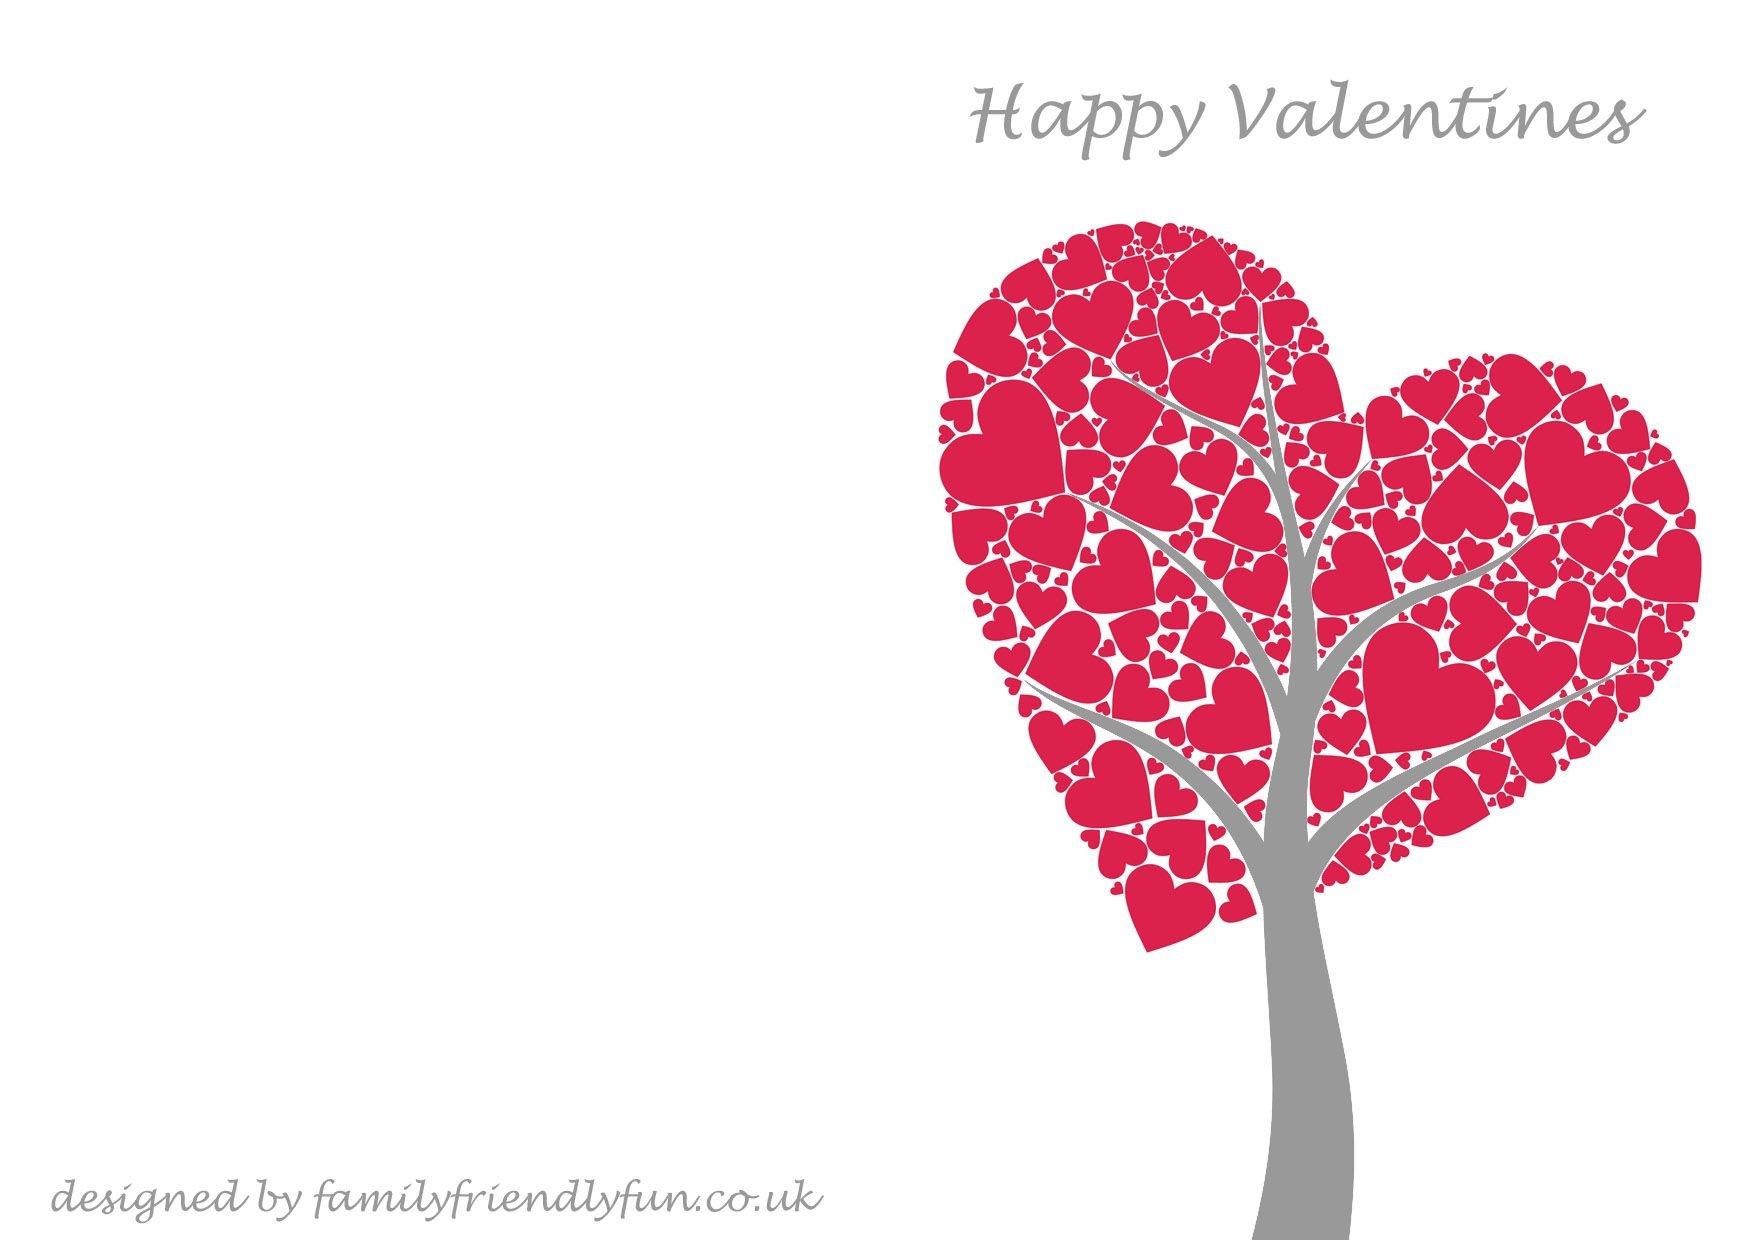 Templates For Greeting Cards At Home Cards Greeting Regarding Valentine's Day Card Printable Templates